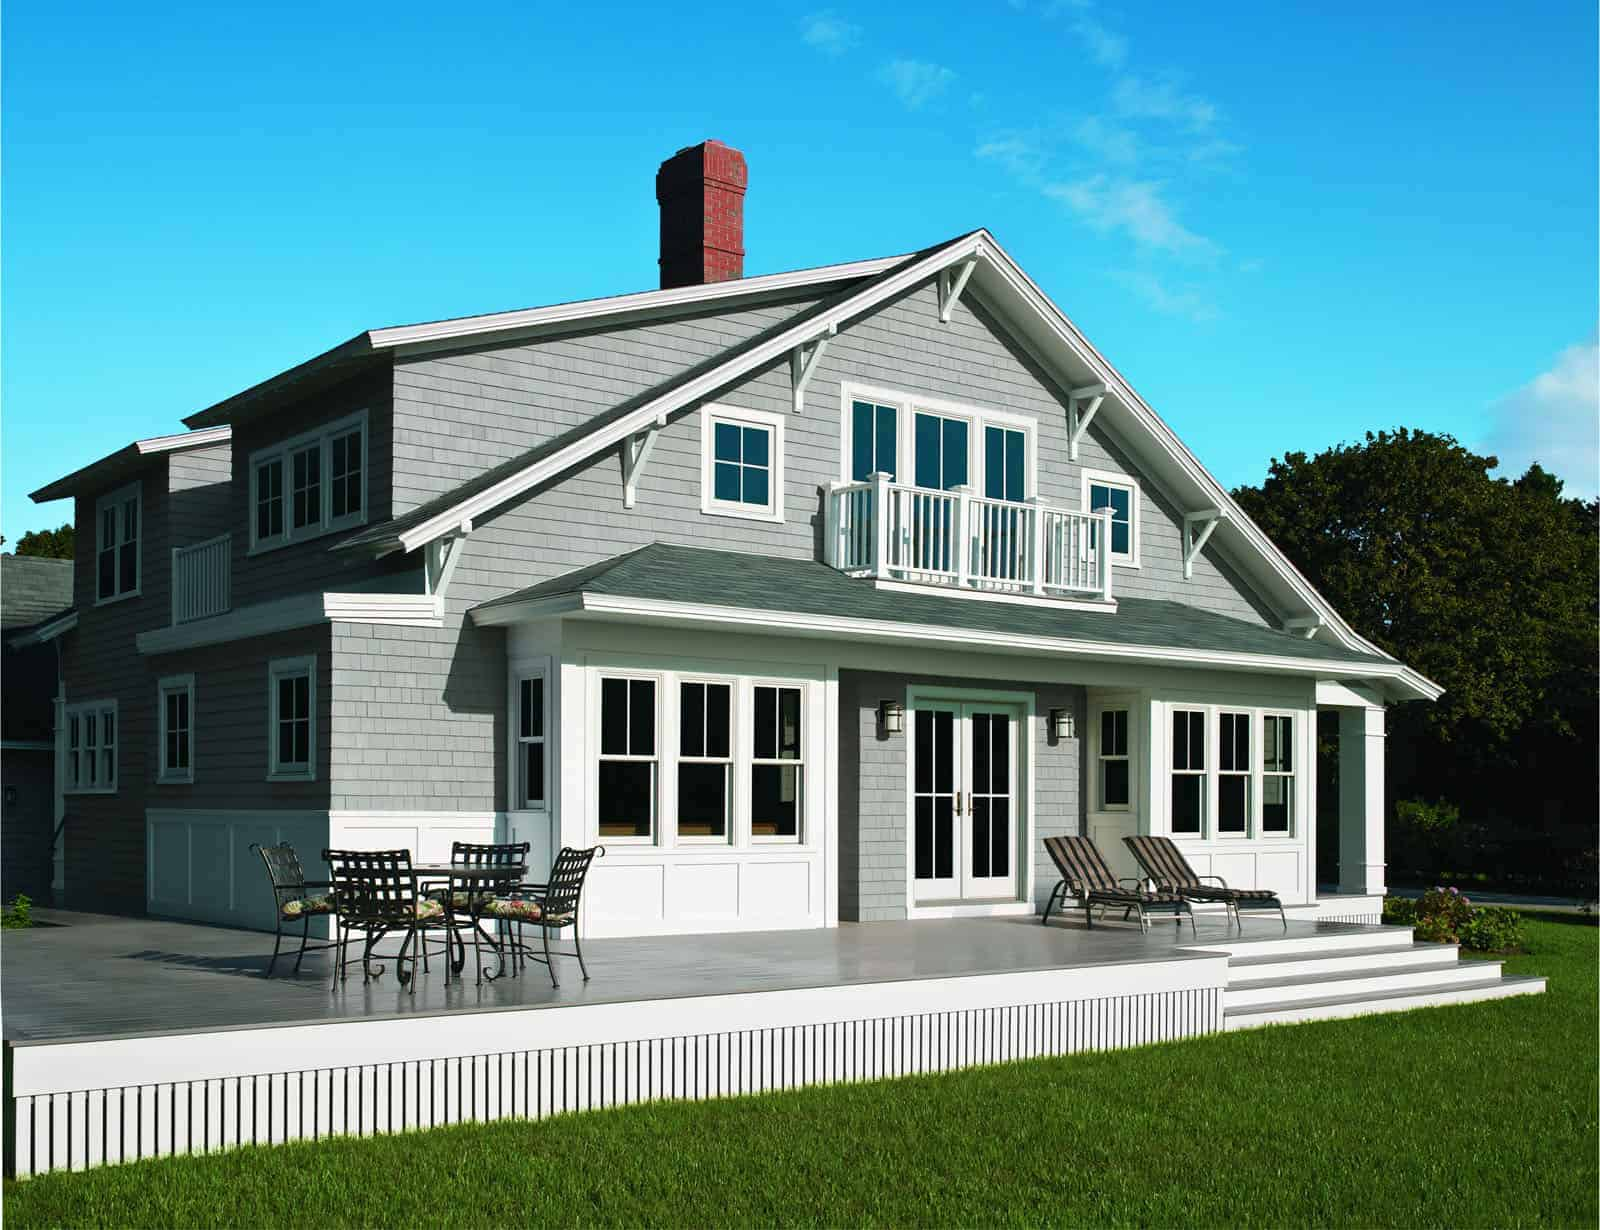 3D rendering of residential home with new wood windows